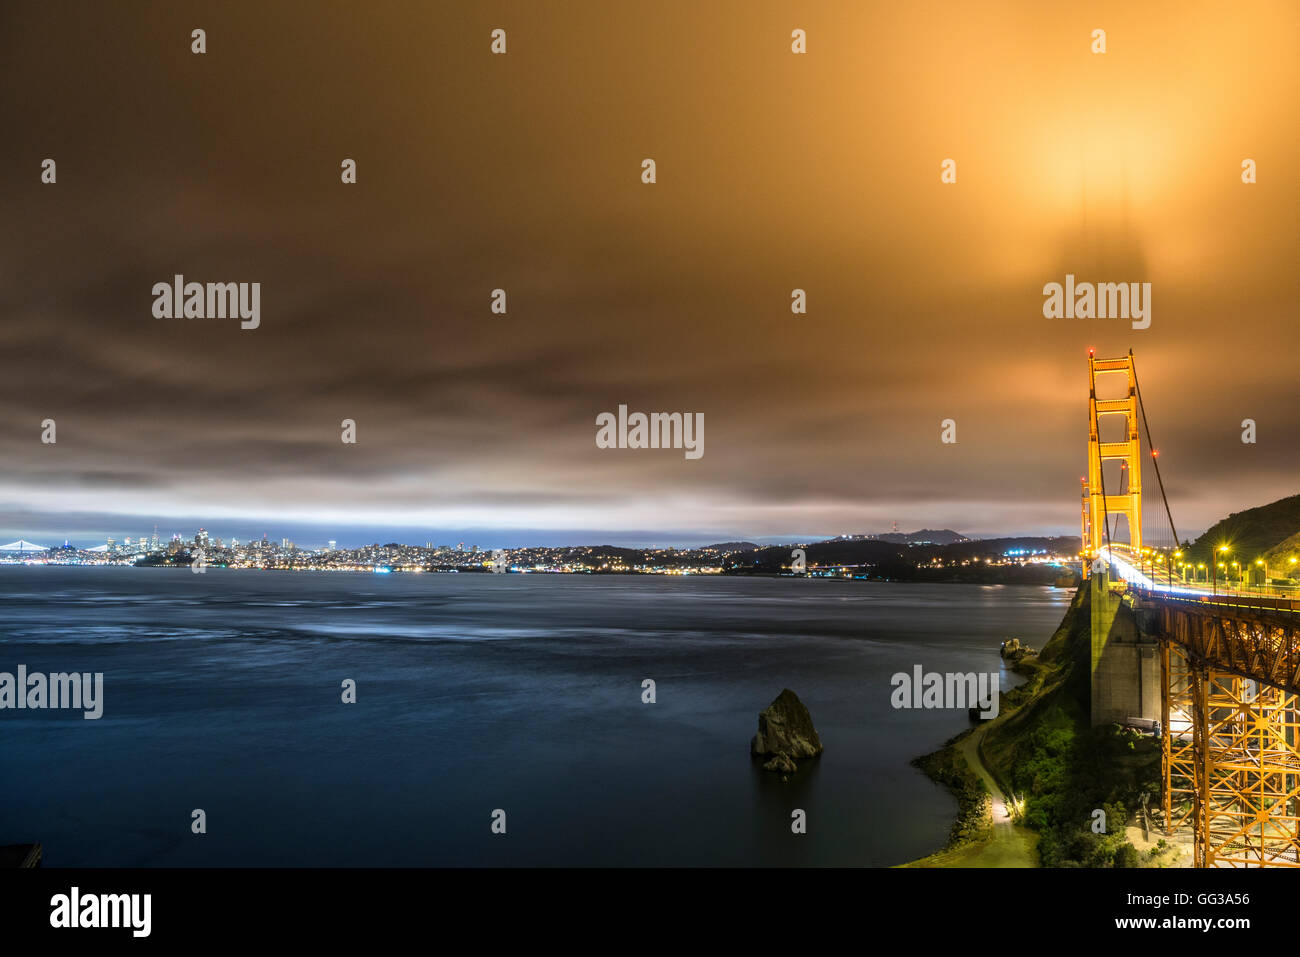 View of the Golden Gate Bridge, San Francisco, USA - Stock Image